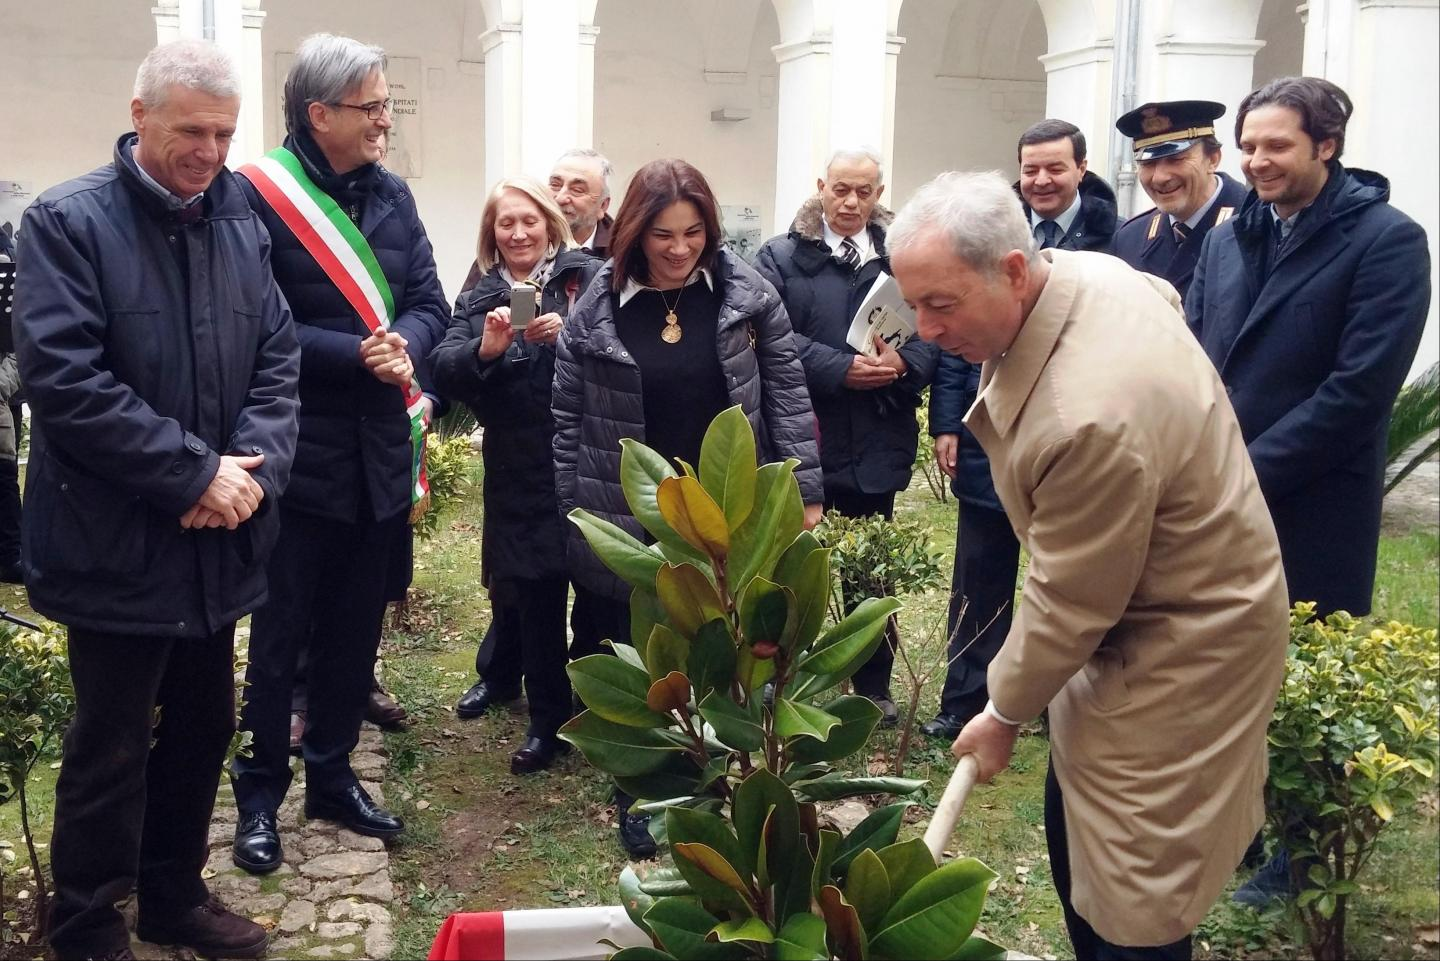 Planting of the magnolia tree. In the picture: the Commissioner of Salerno Pasquale Errico.